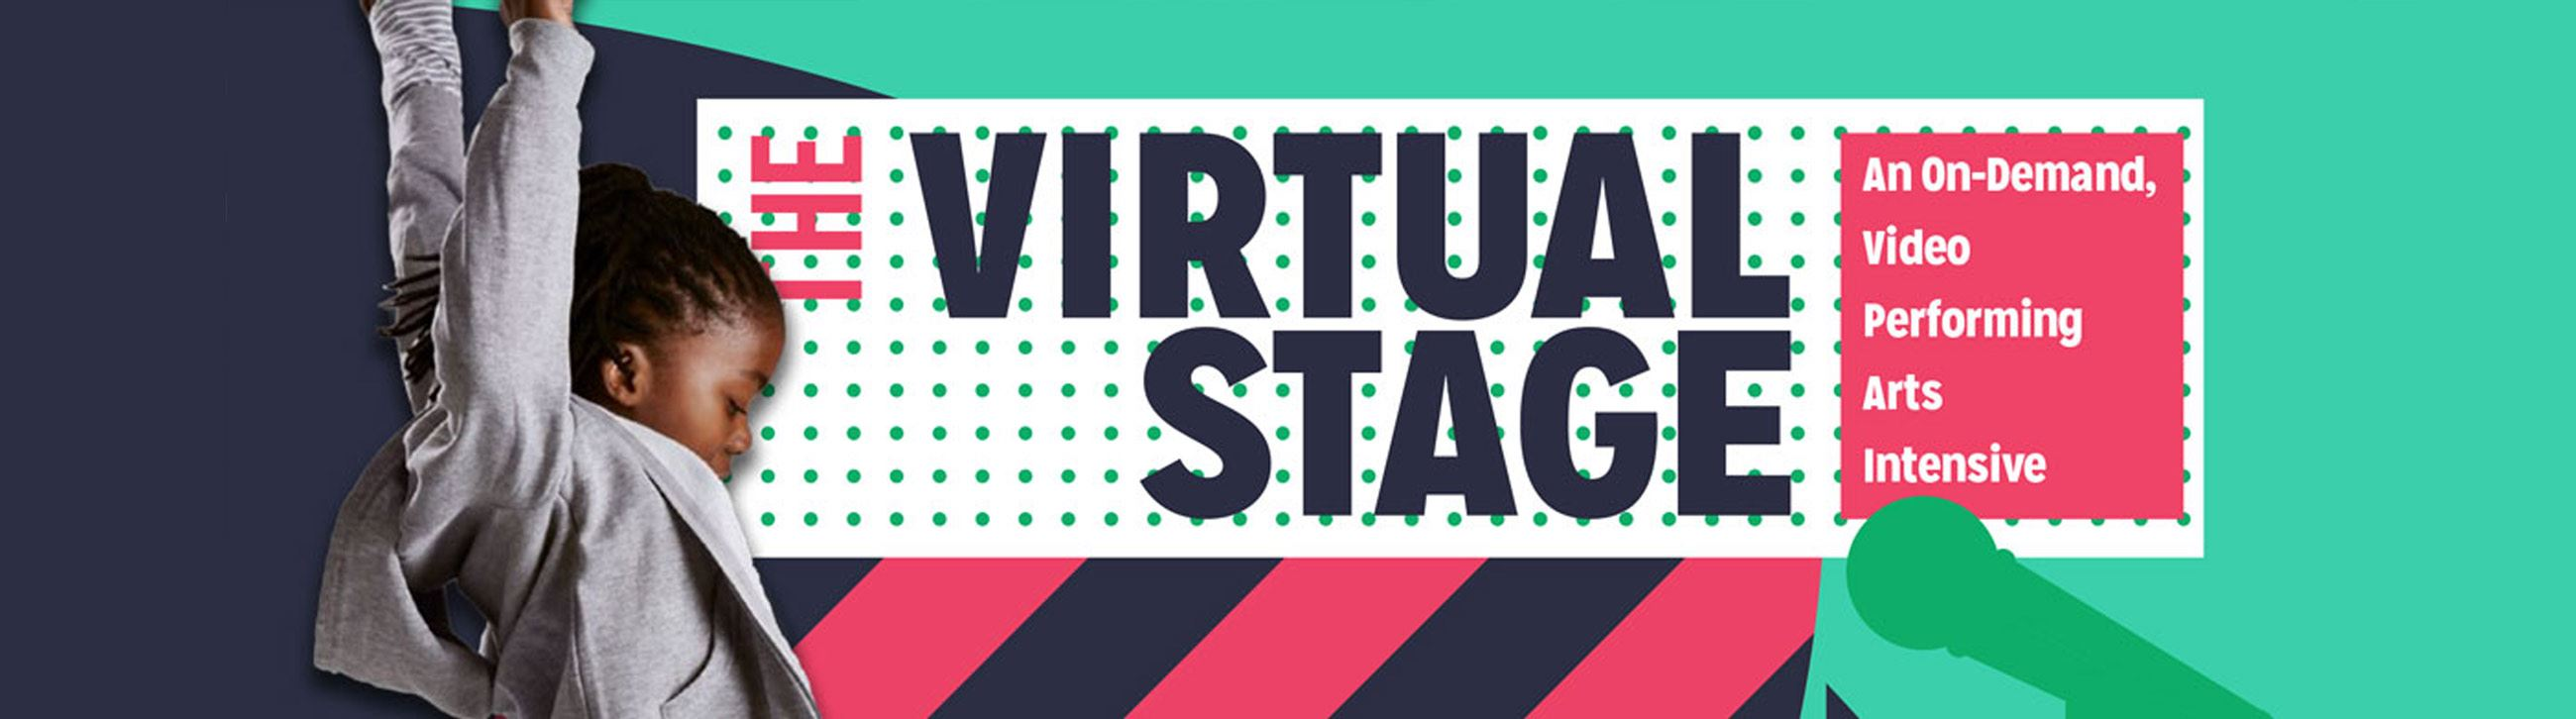 virtual stage geometric banner